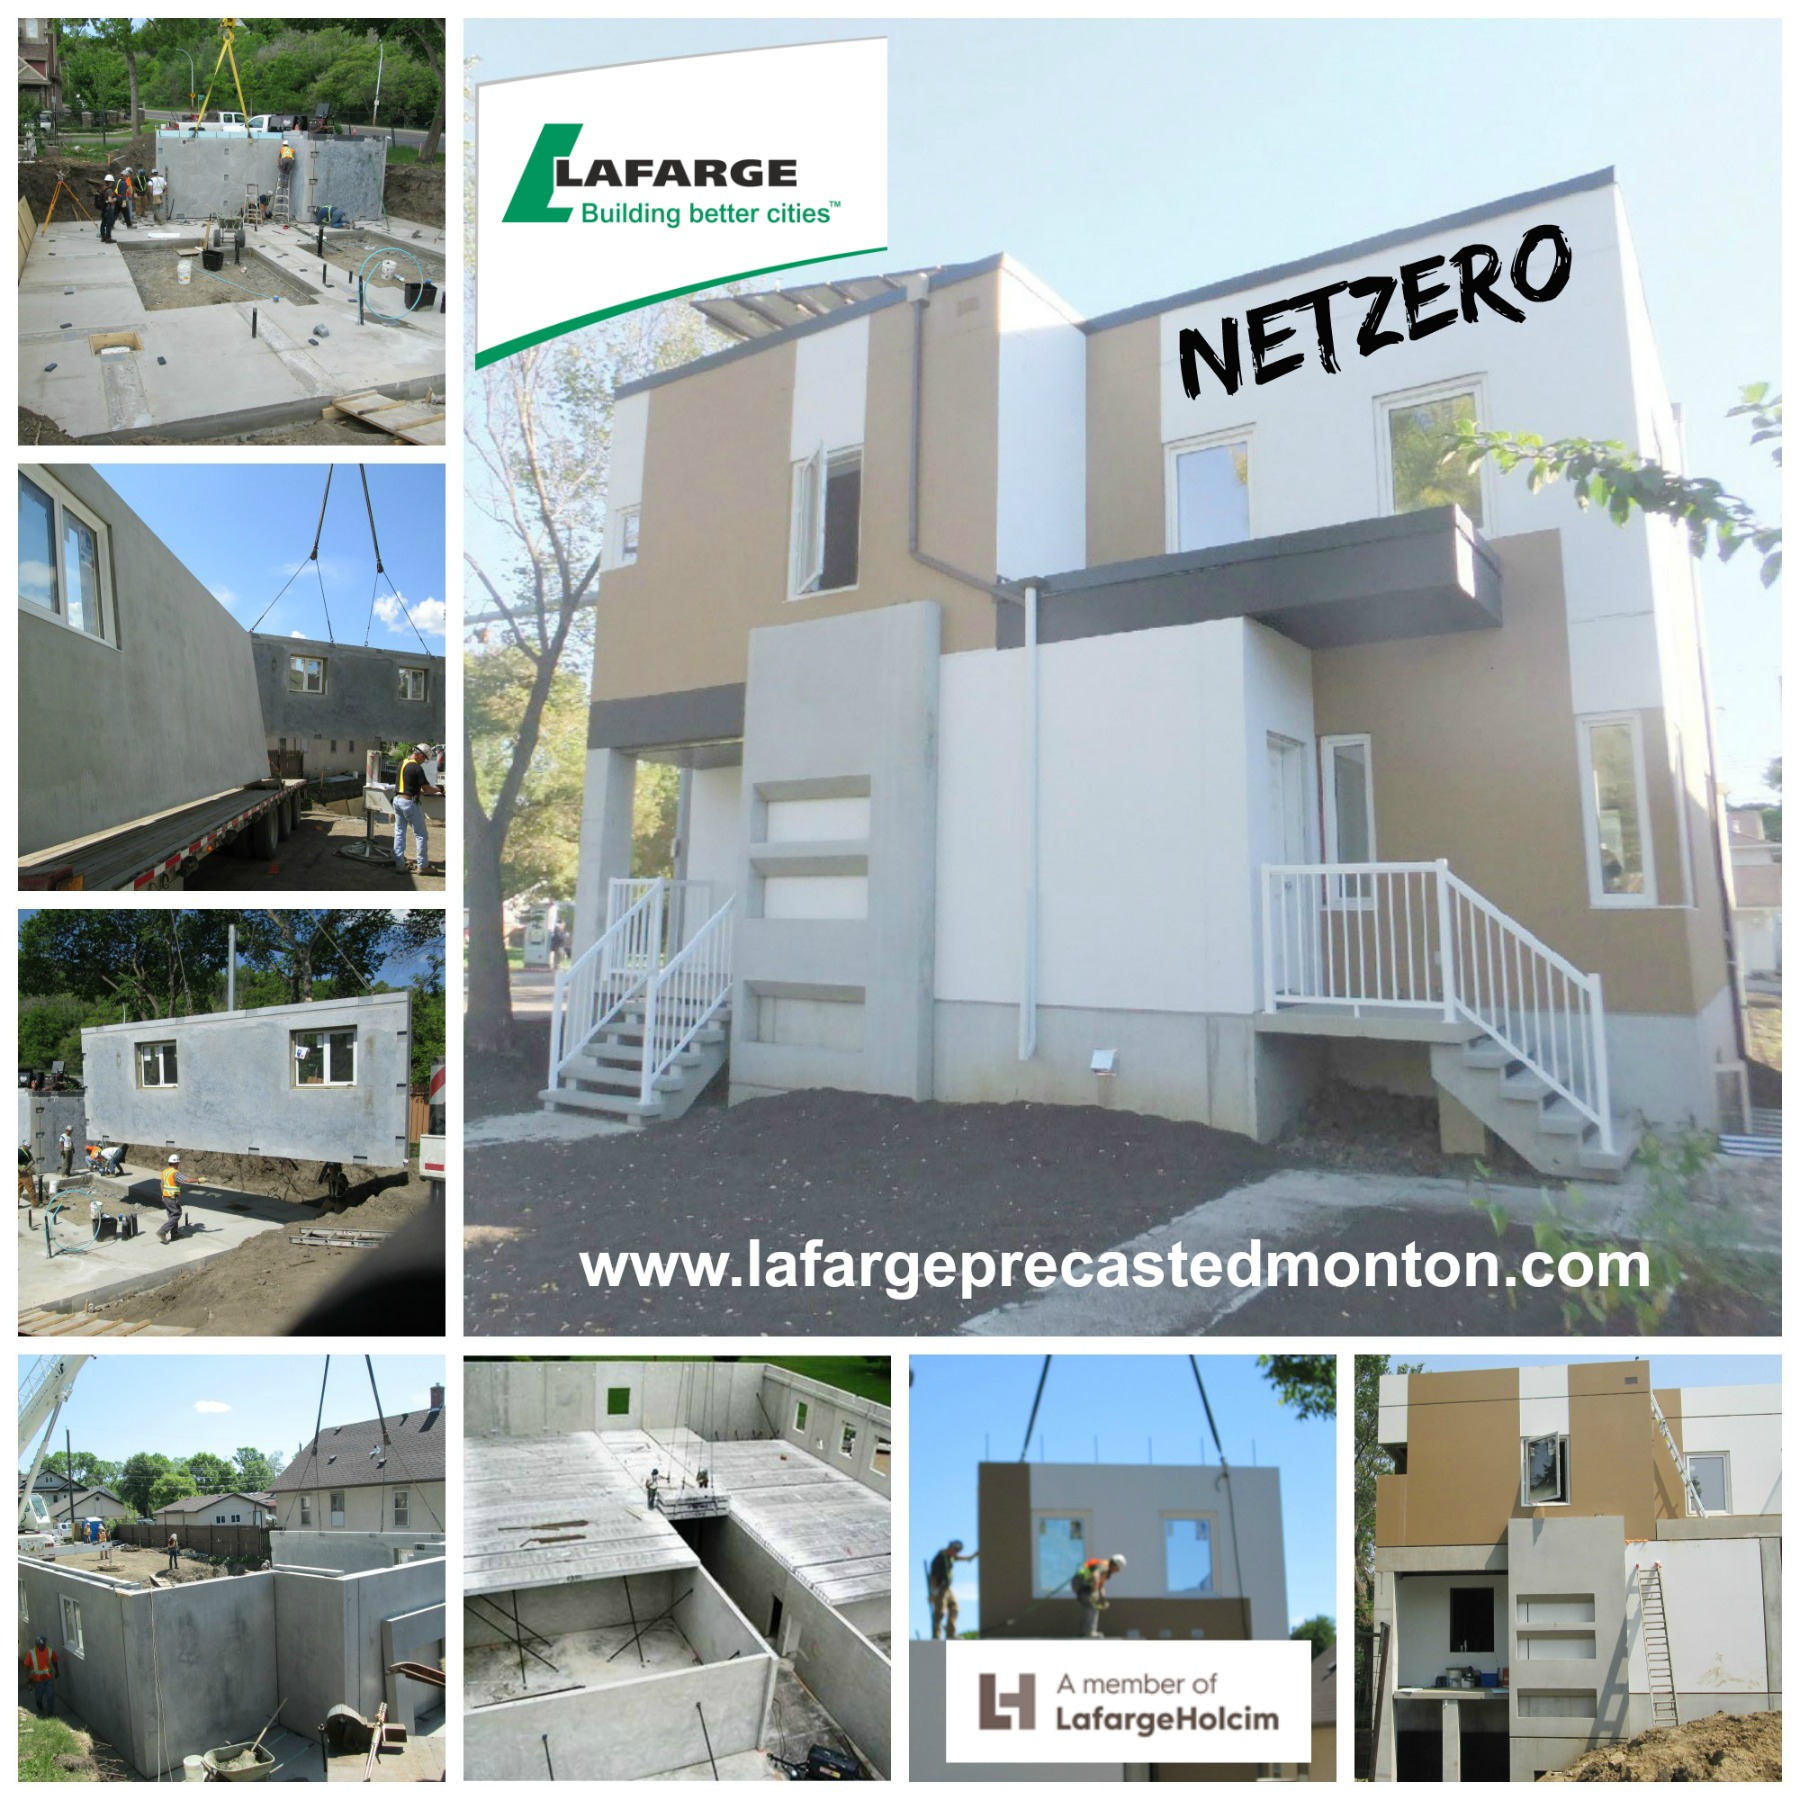 Netzero energy precast concrete homes edmonton lafarge Precast concrete residential homes